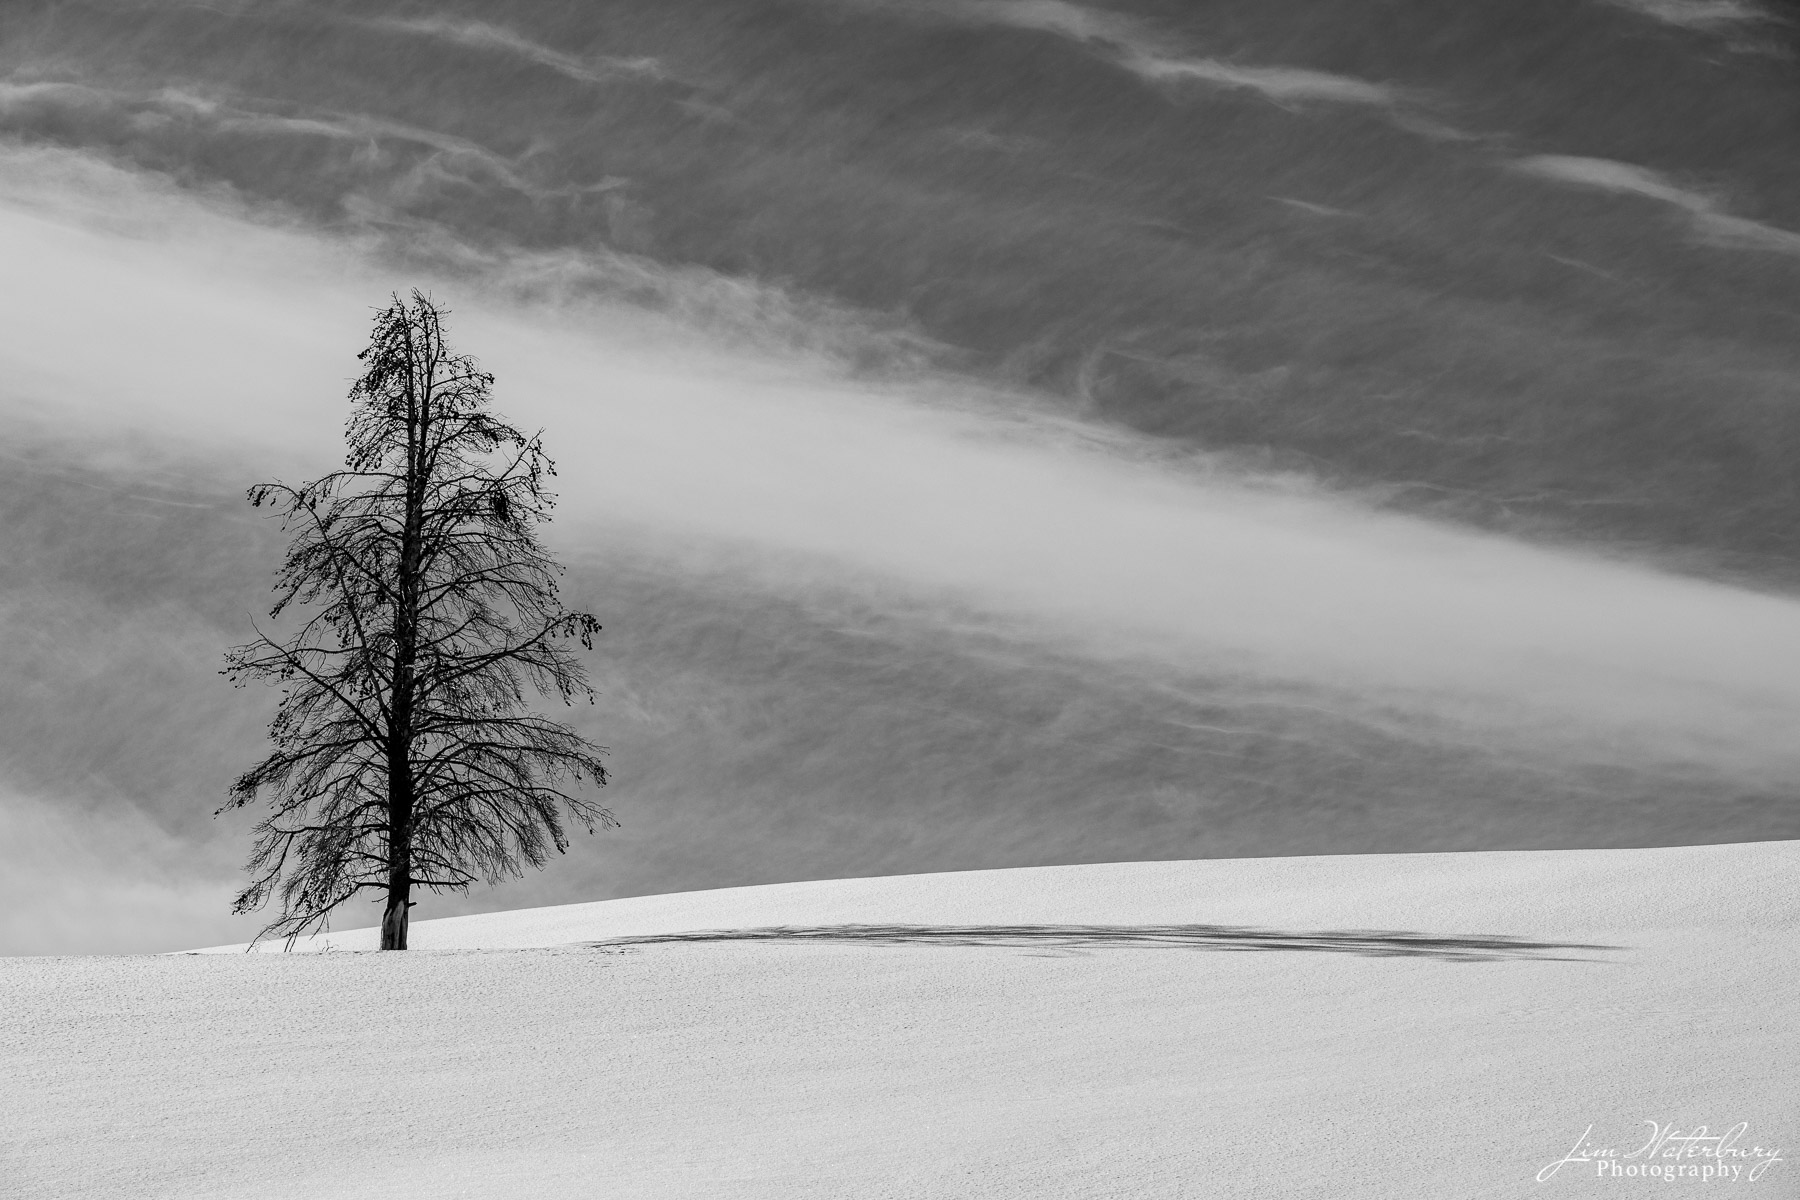 Black & white image of a lone tree standing among the rolling, snow-covered hills of the Hayden Valley in Winter.